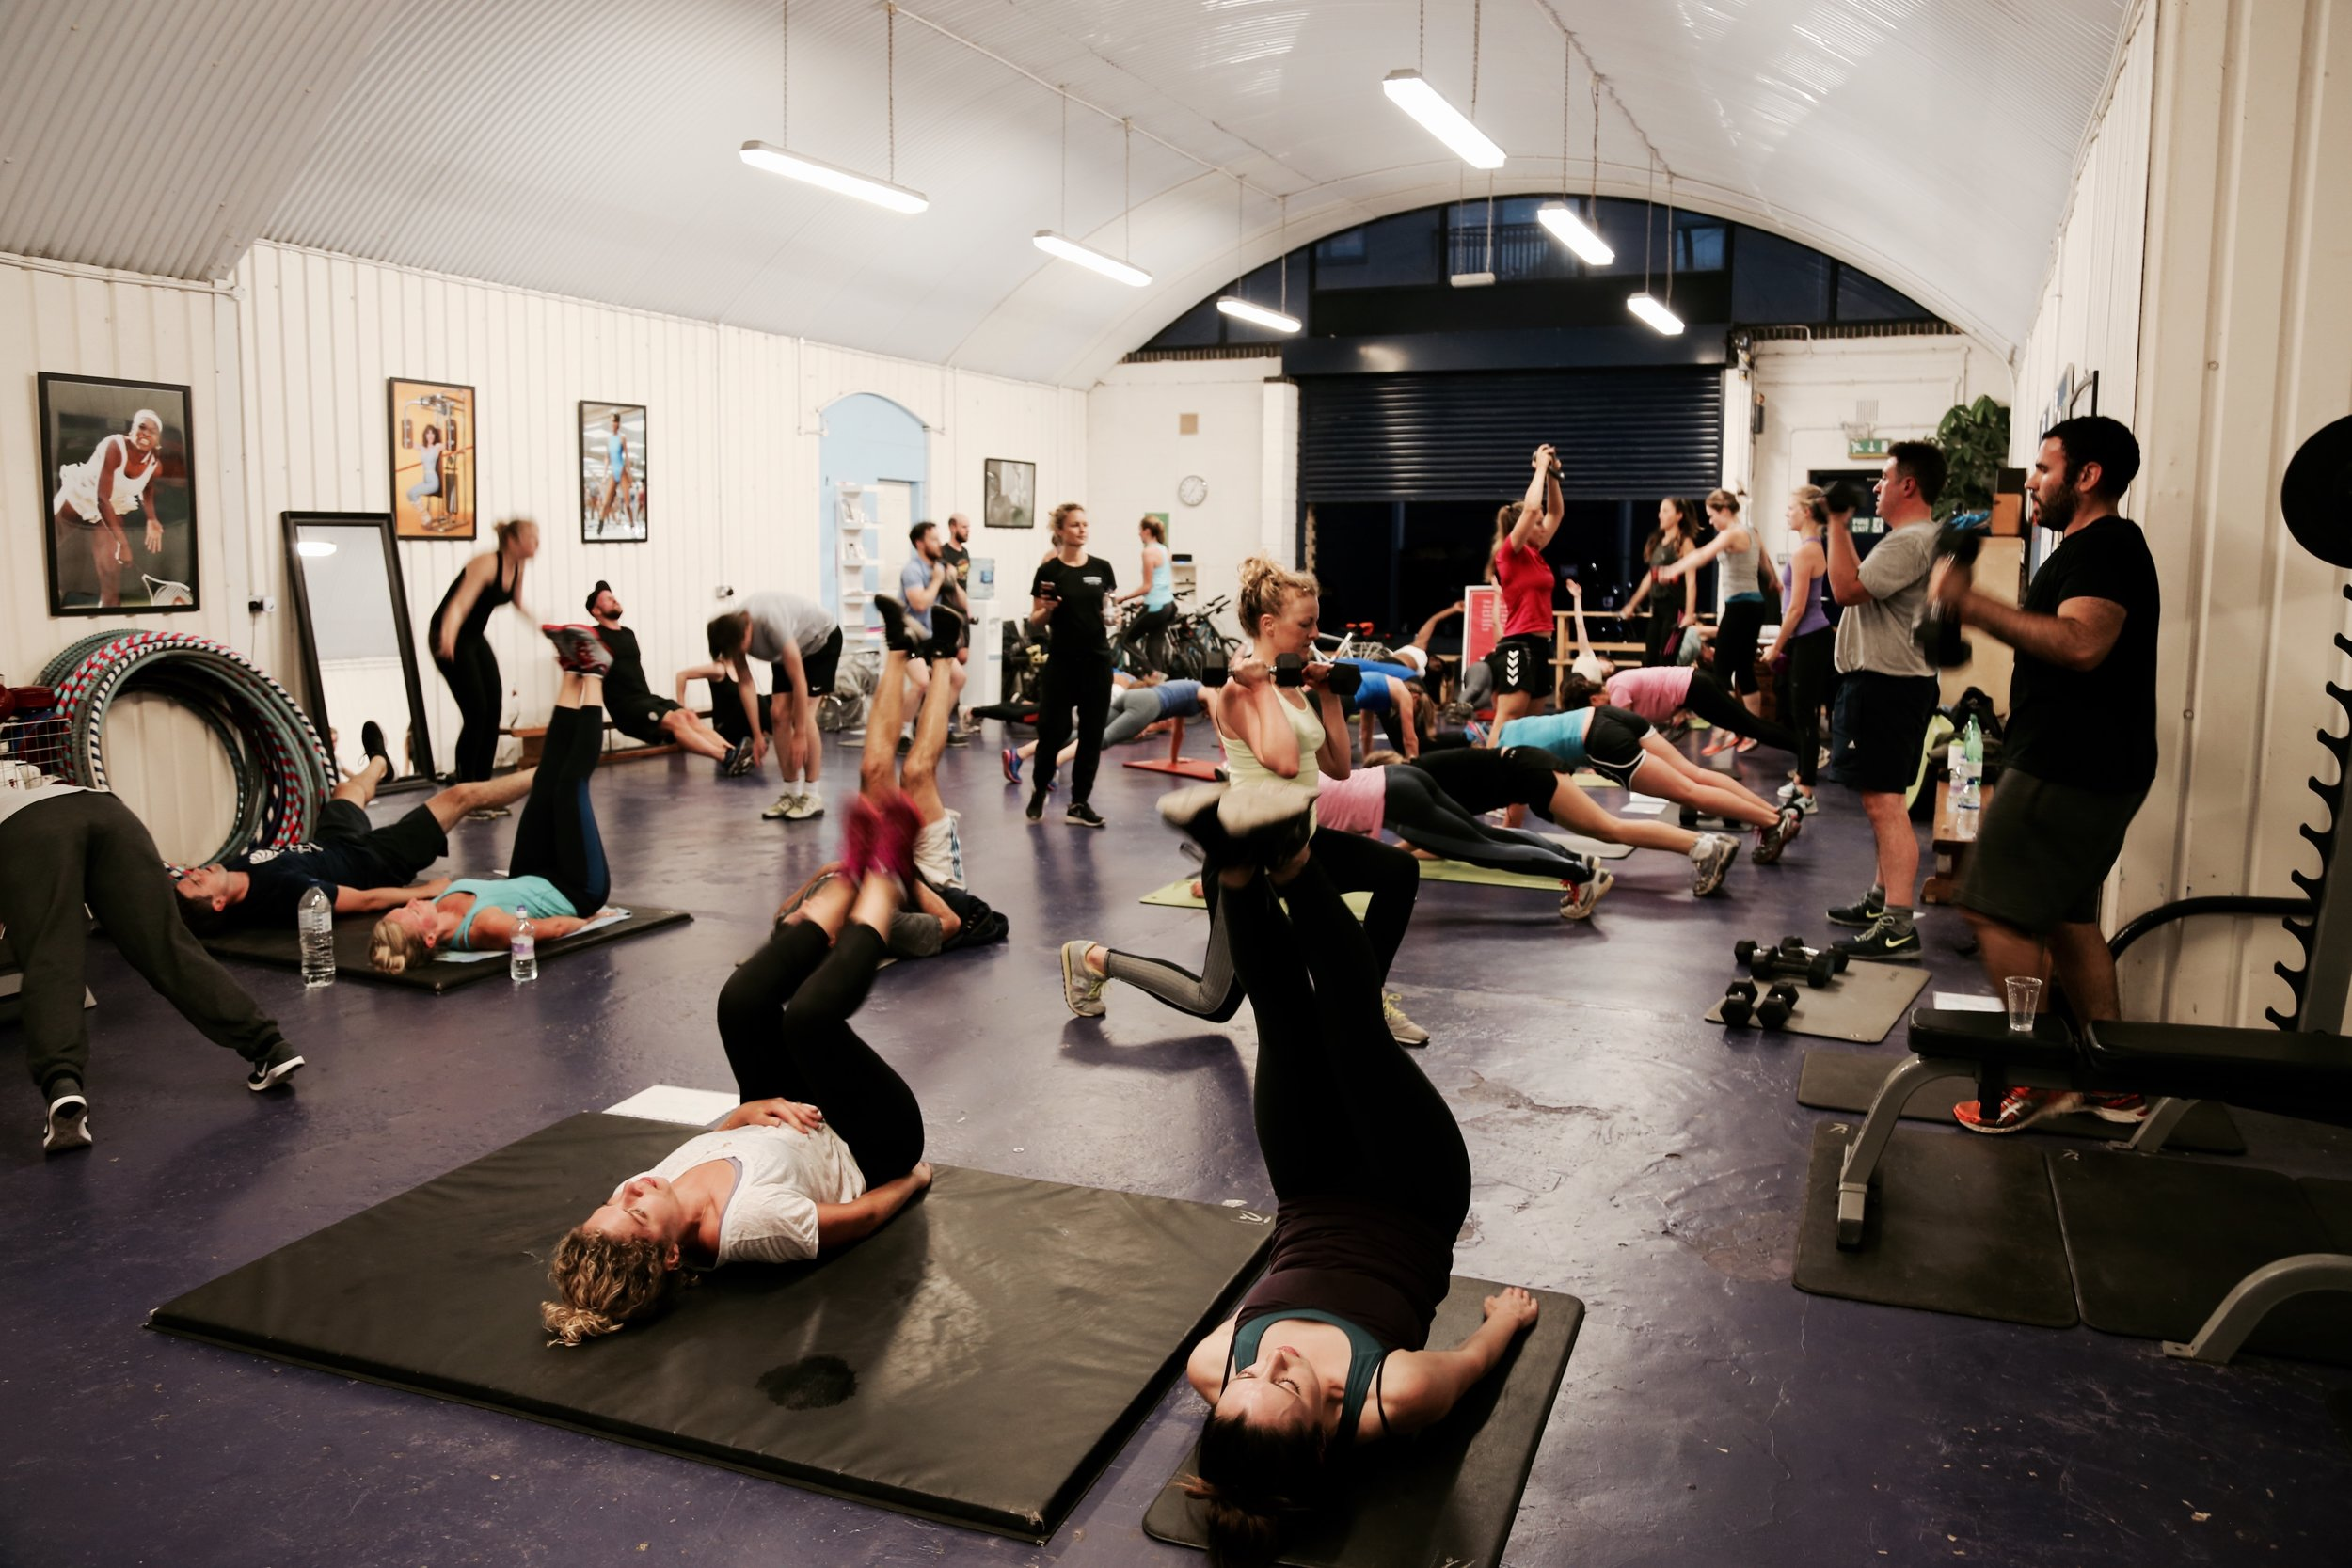 Circuits - Like a high-school gym class, participants move around a circuit of exercise stations in small groups. Expect strengthening, toning and cardio.8am Tuesdays w/Rowan (30 mins) 7am Thursdays w/Claire B (30 mins) £6 Drop-in, included in the Class Pass.